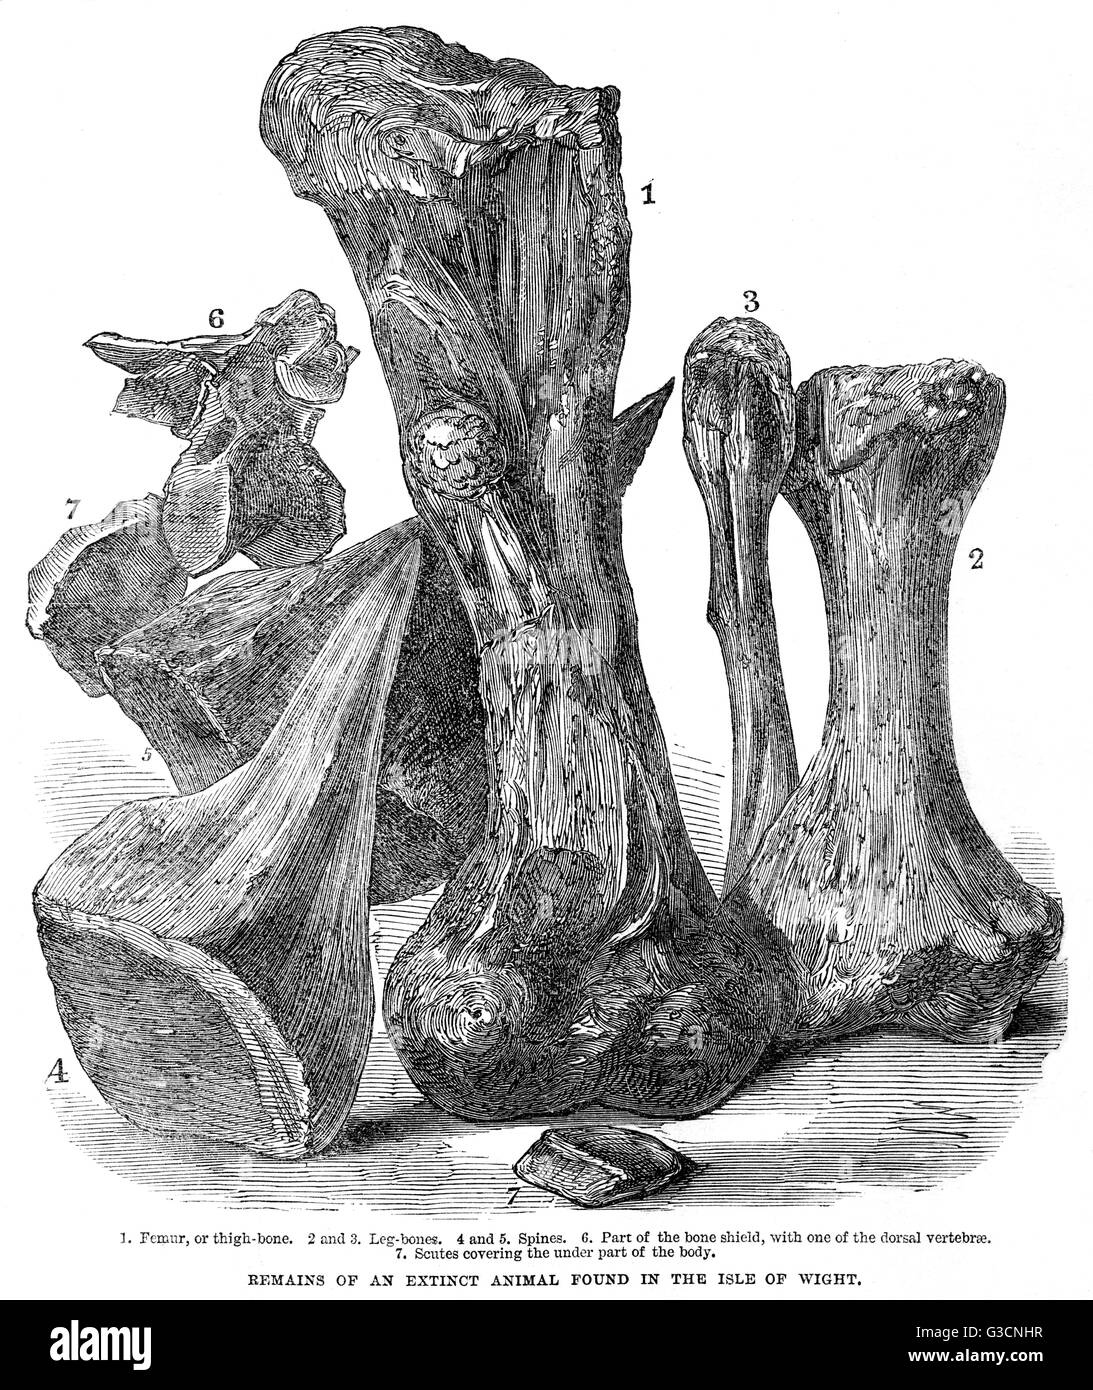 Remains of an extinct animal found in the Isle of Wight.  Engraving from the Illustrated London News showing a selection - Stock Image